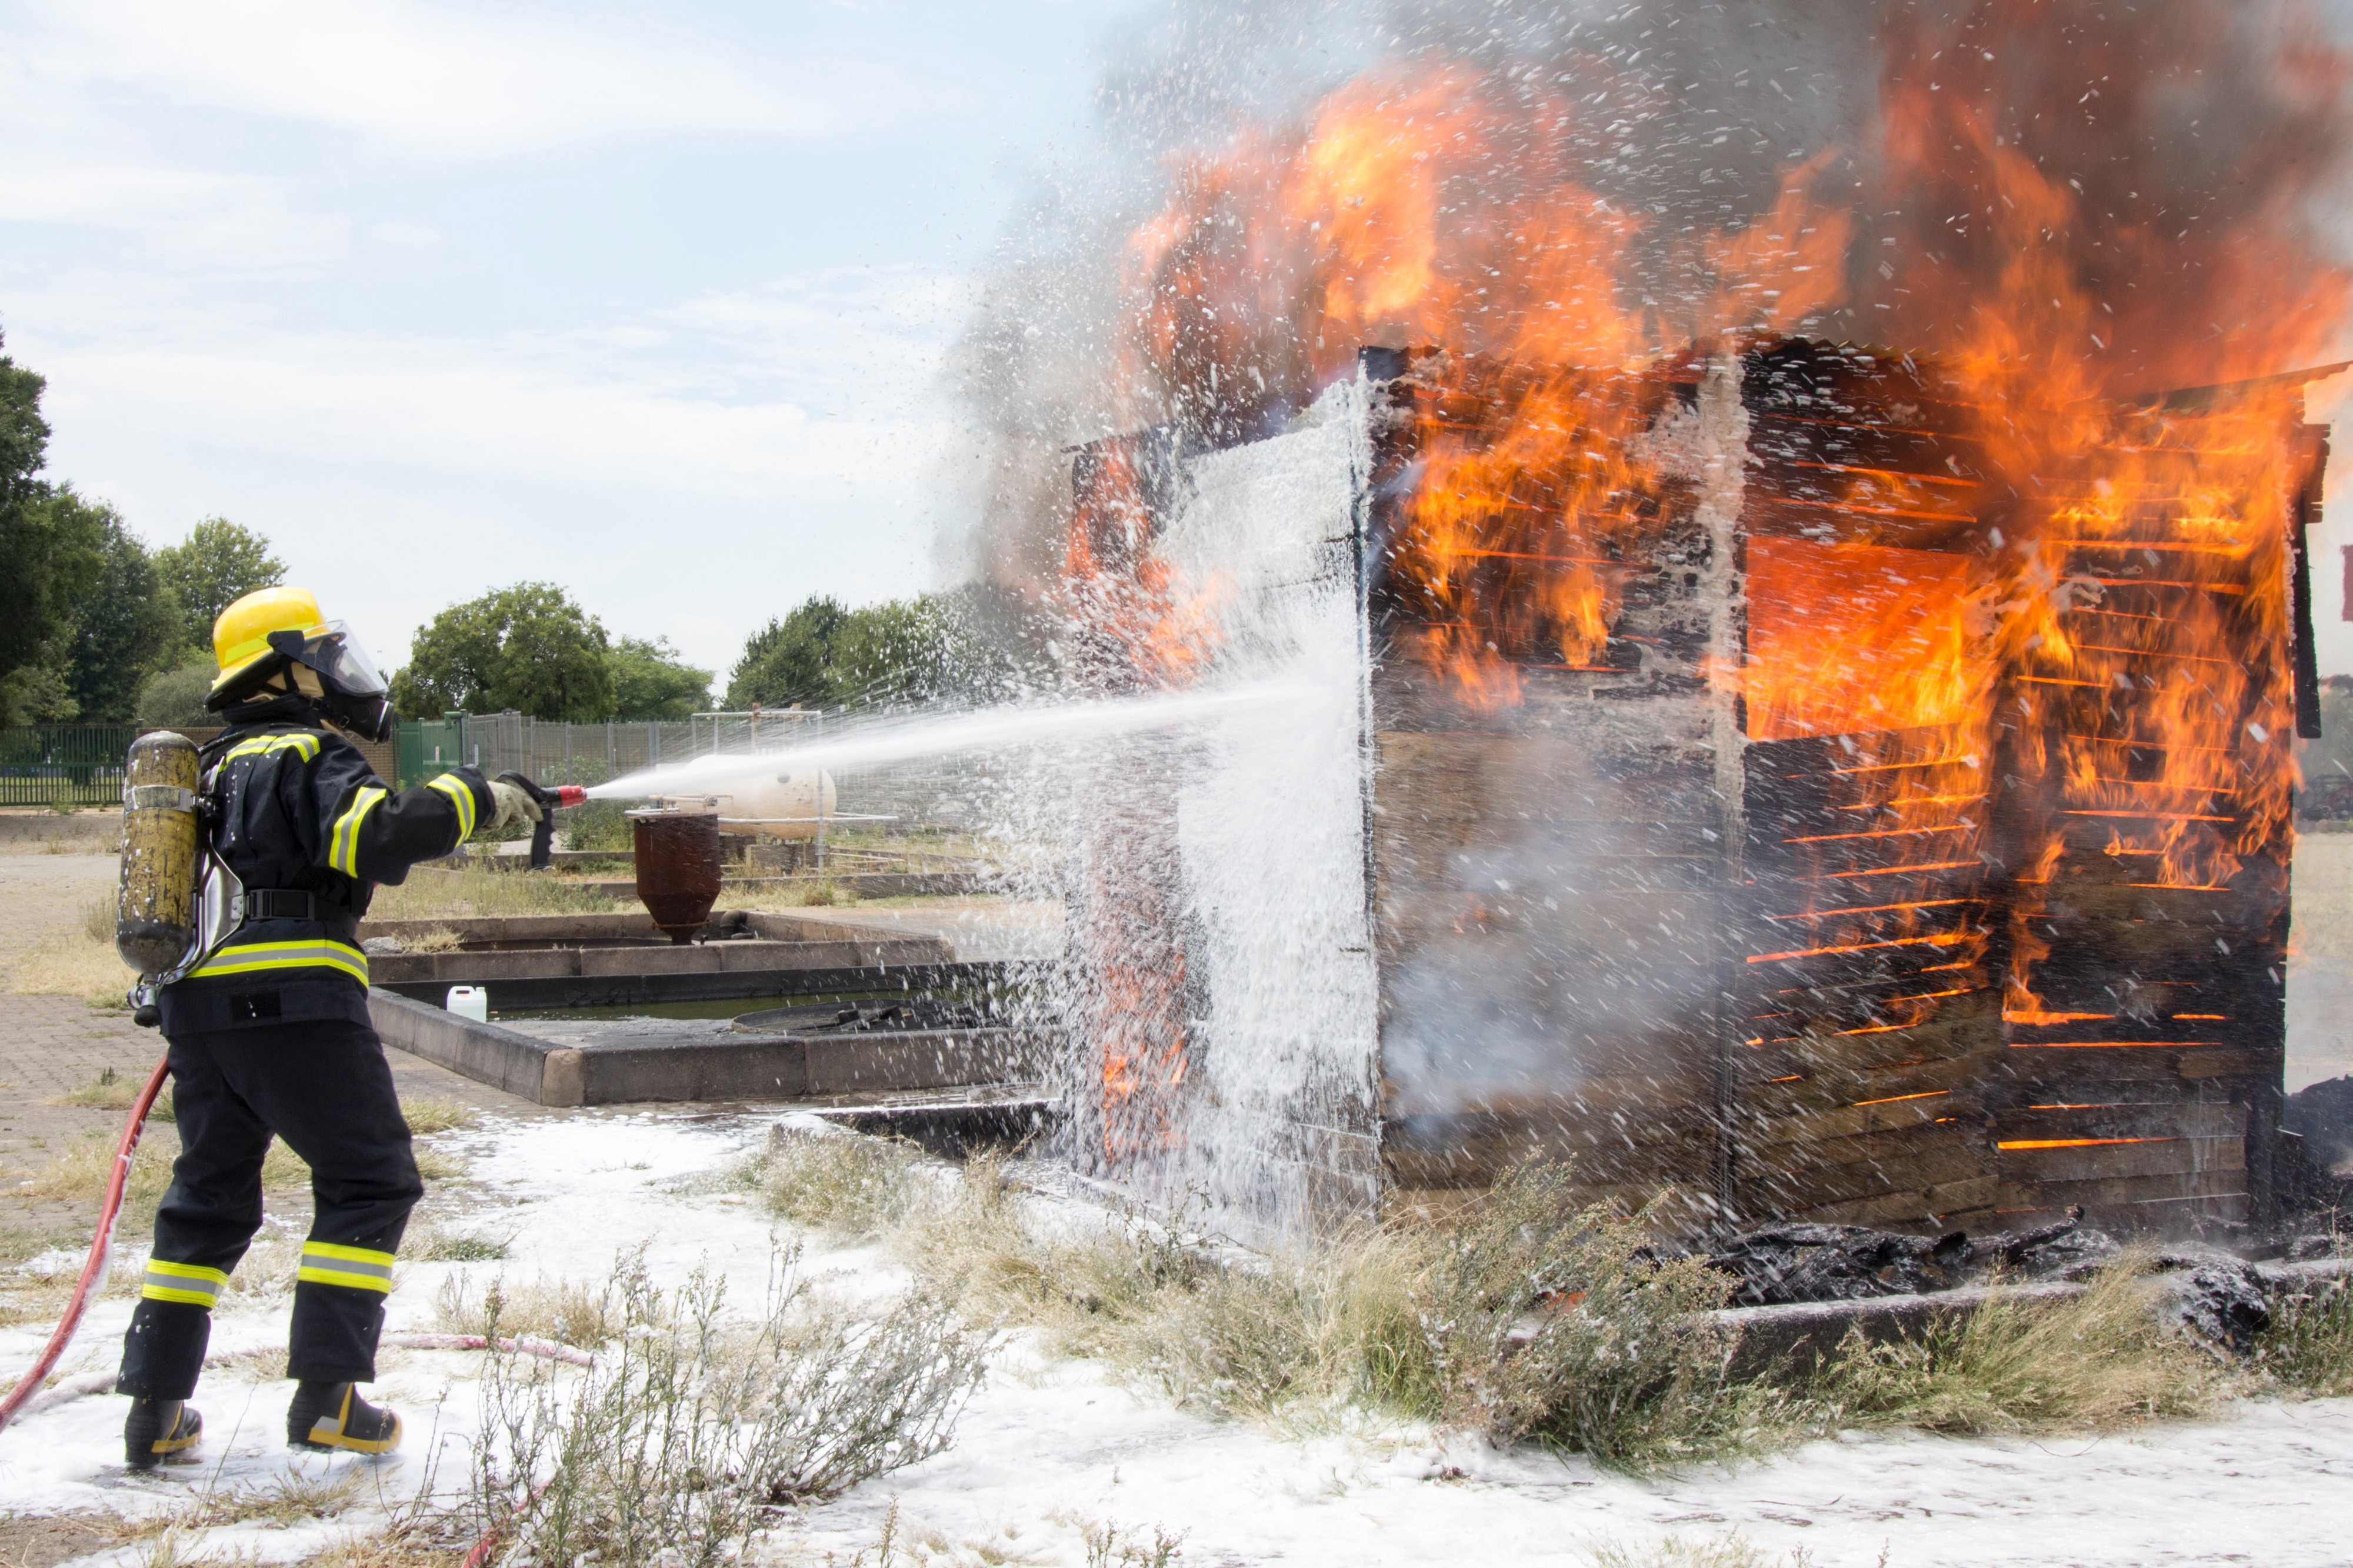 A fireman putting out a practice fire made of wood with a foam spray.